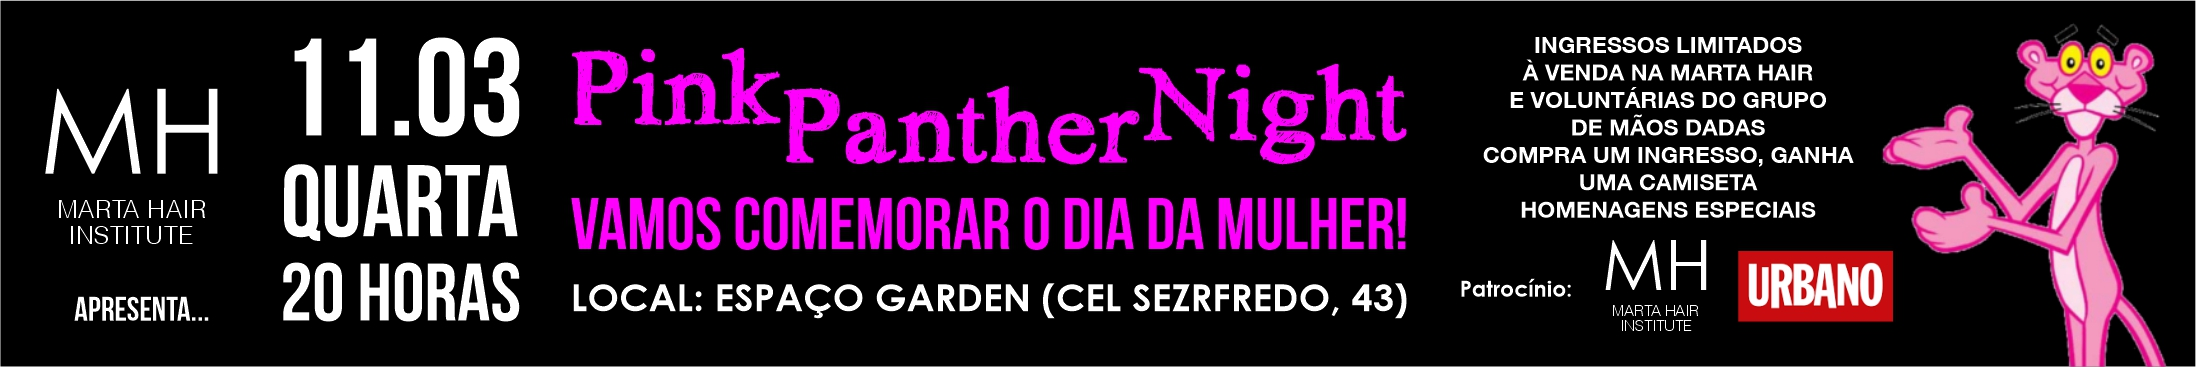 11-03-2020 - Pink Panther Night